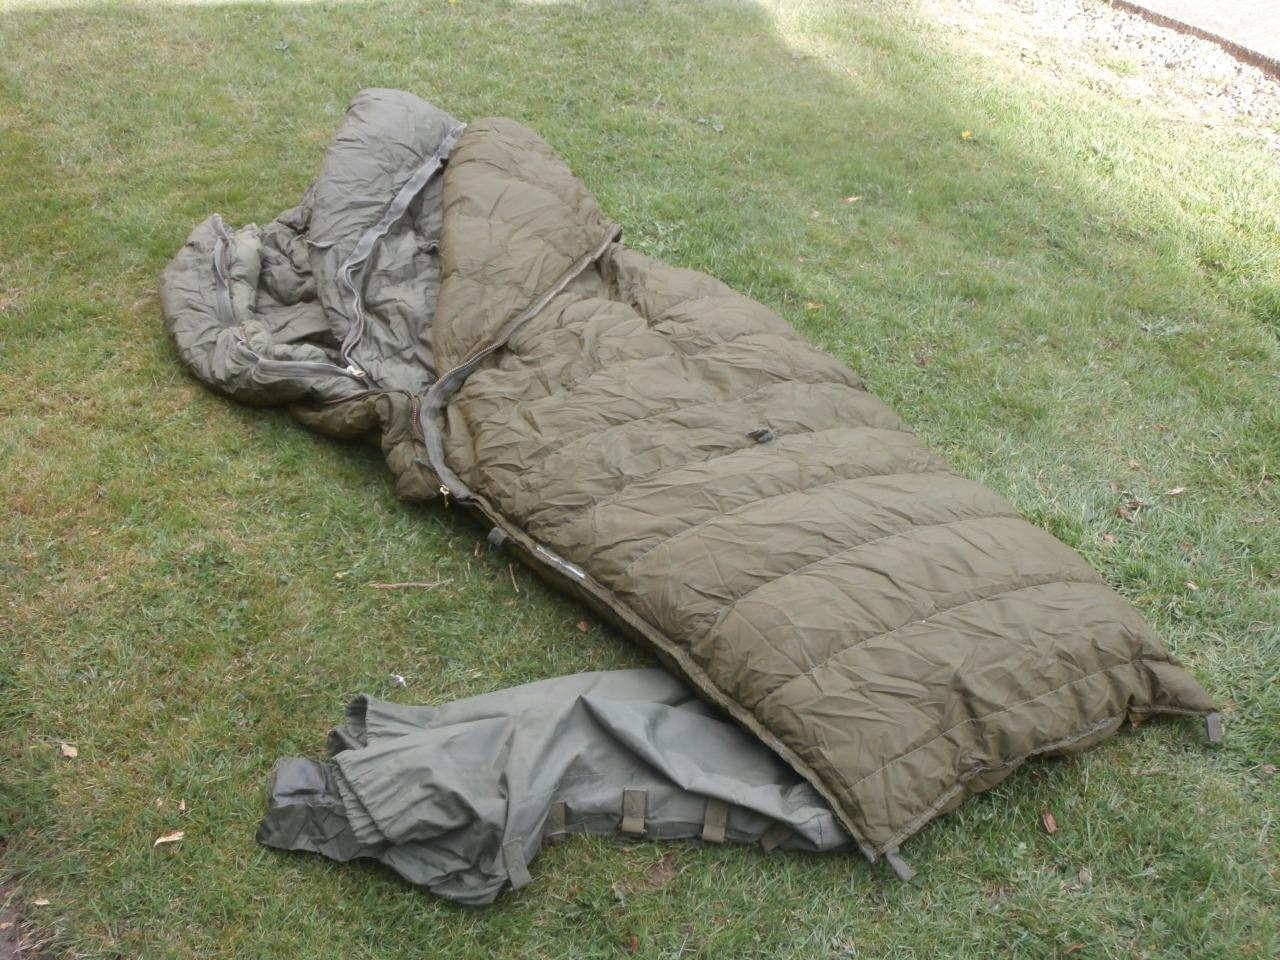 Canadian Military Issue Cold Weather Sleeping Bag